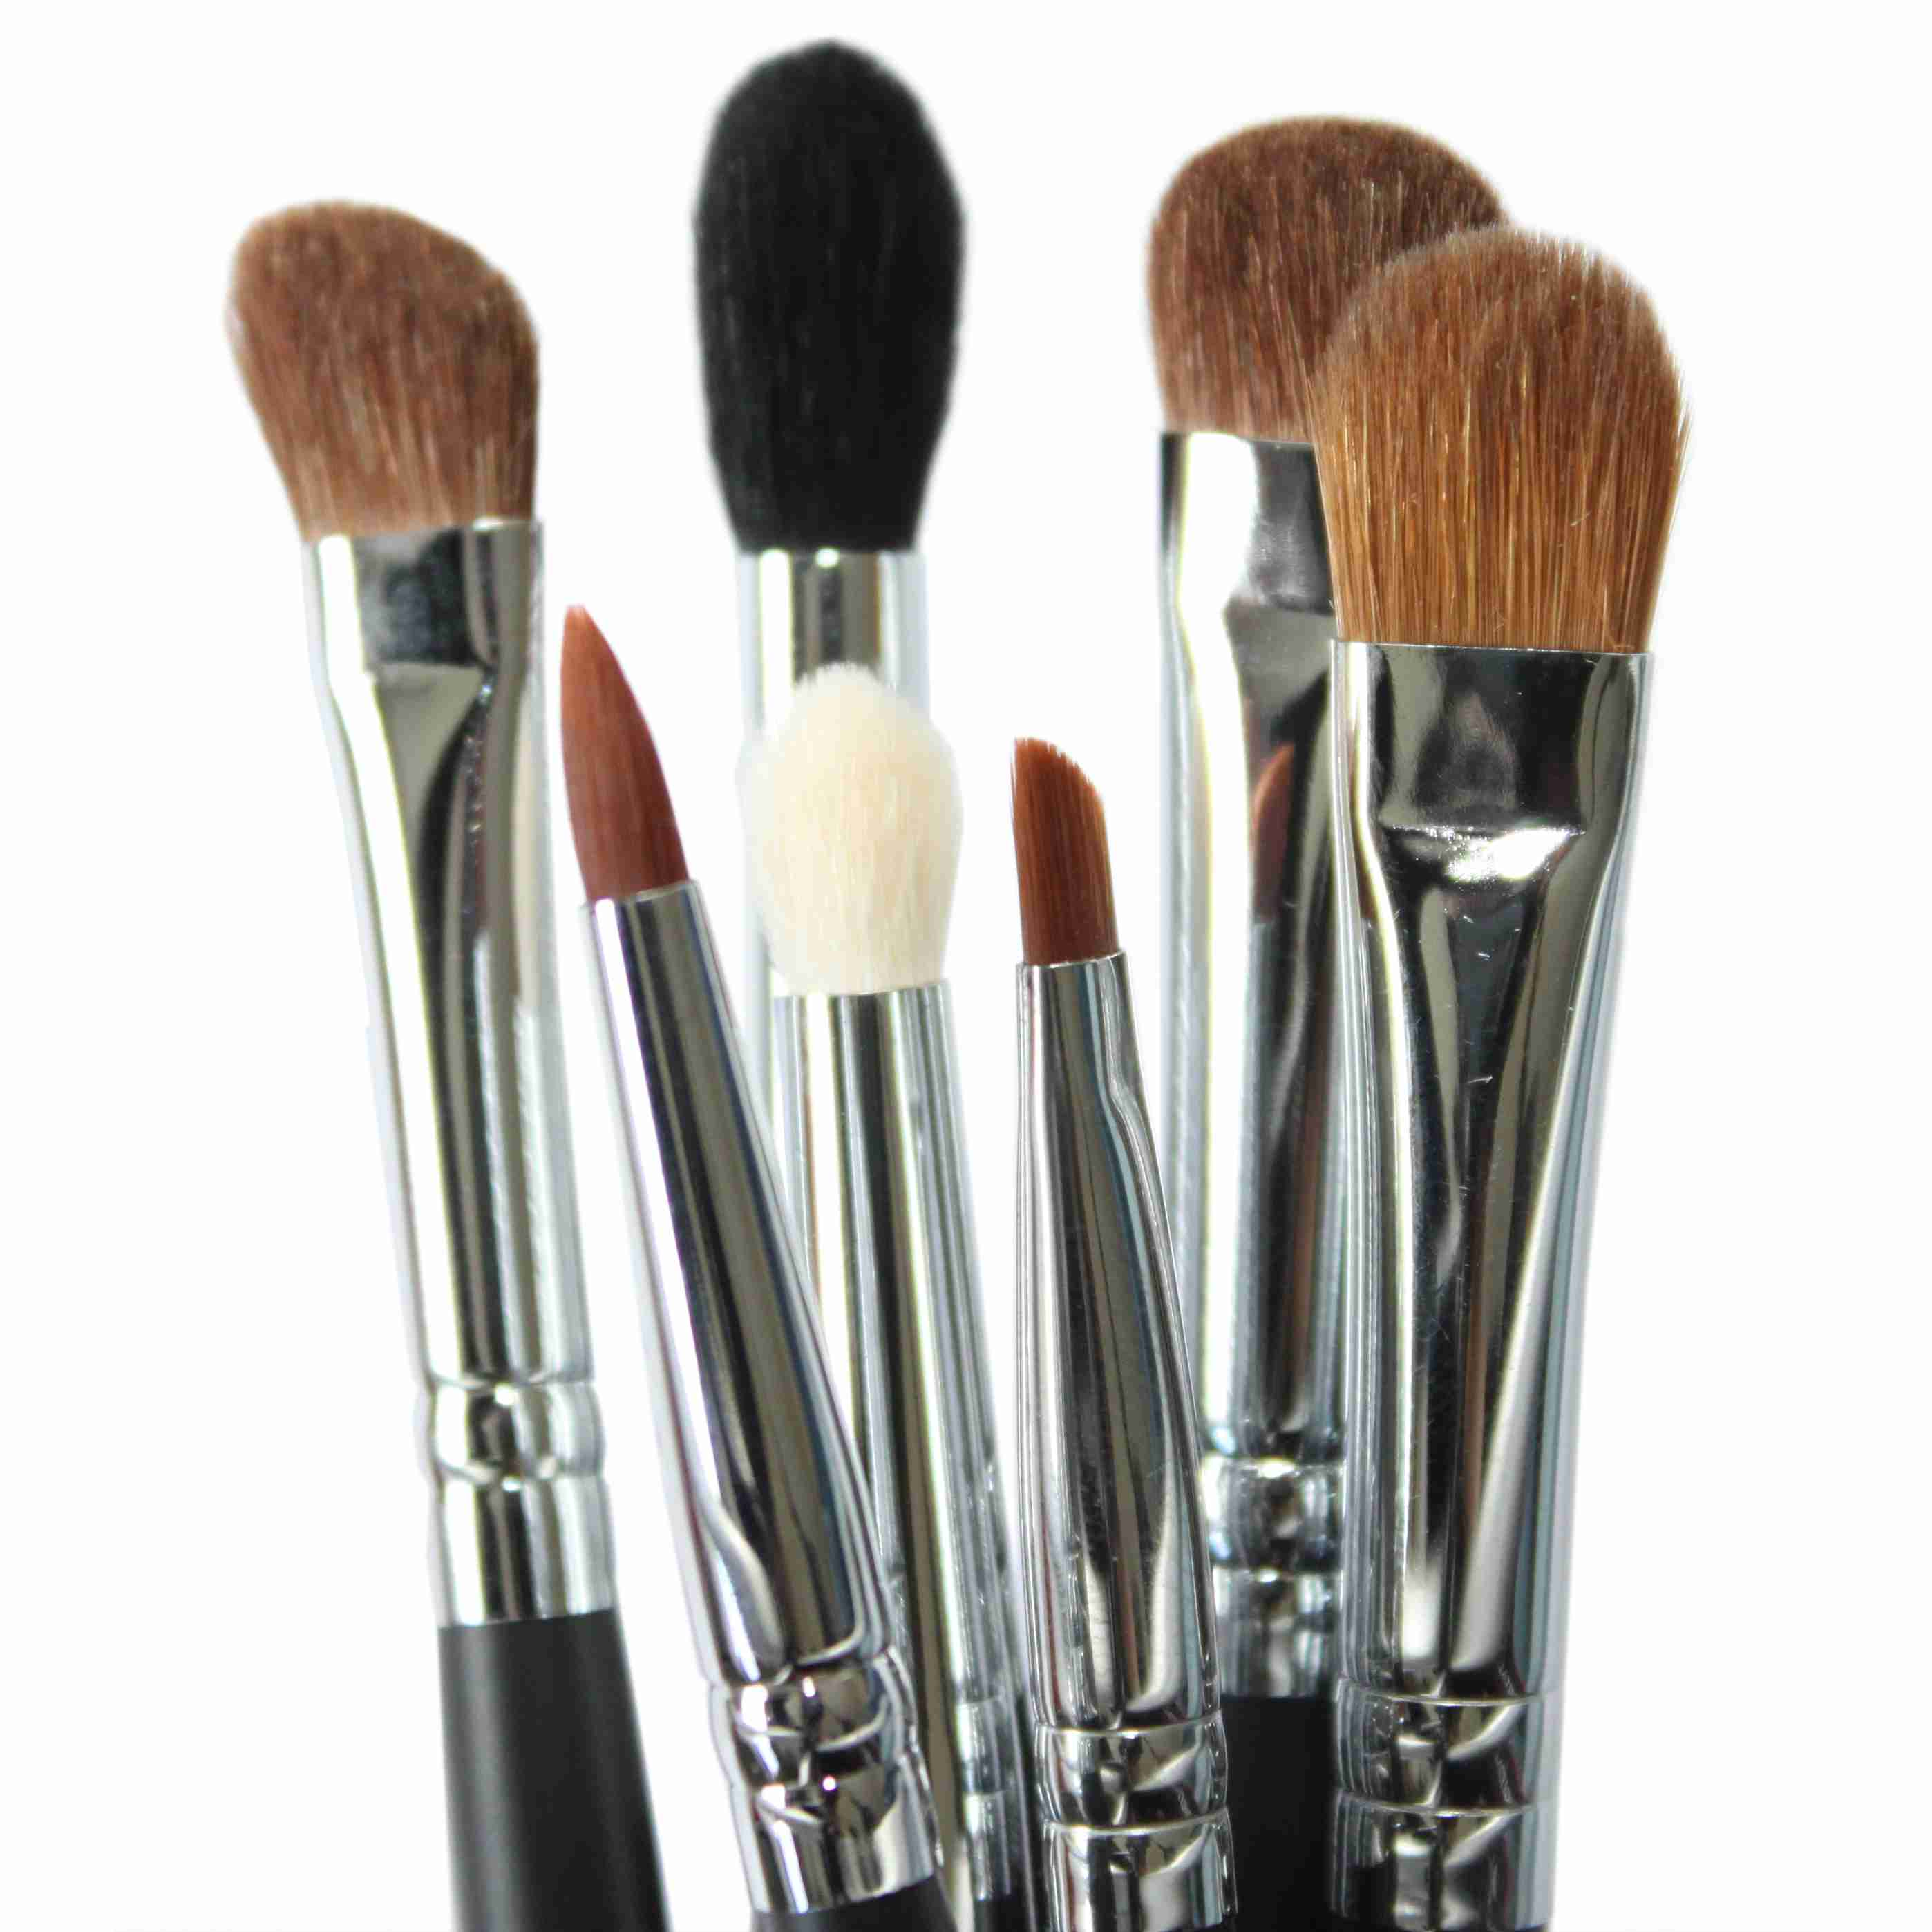 Types Of Makeup Brushes And Their Uses